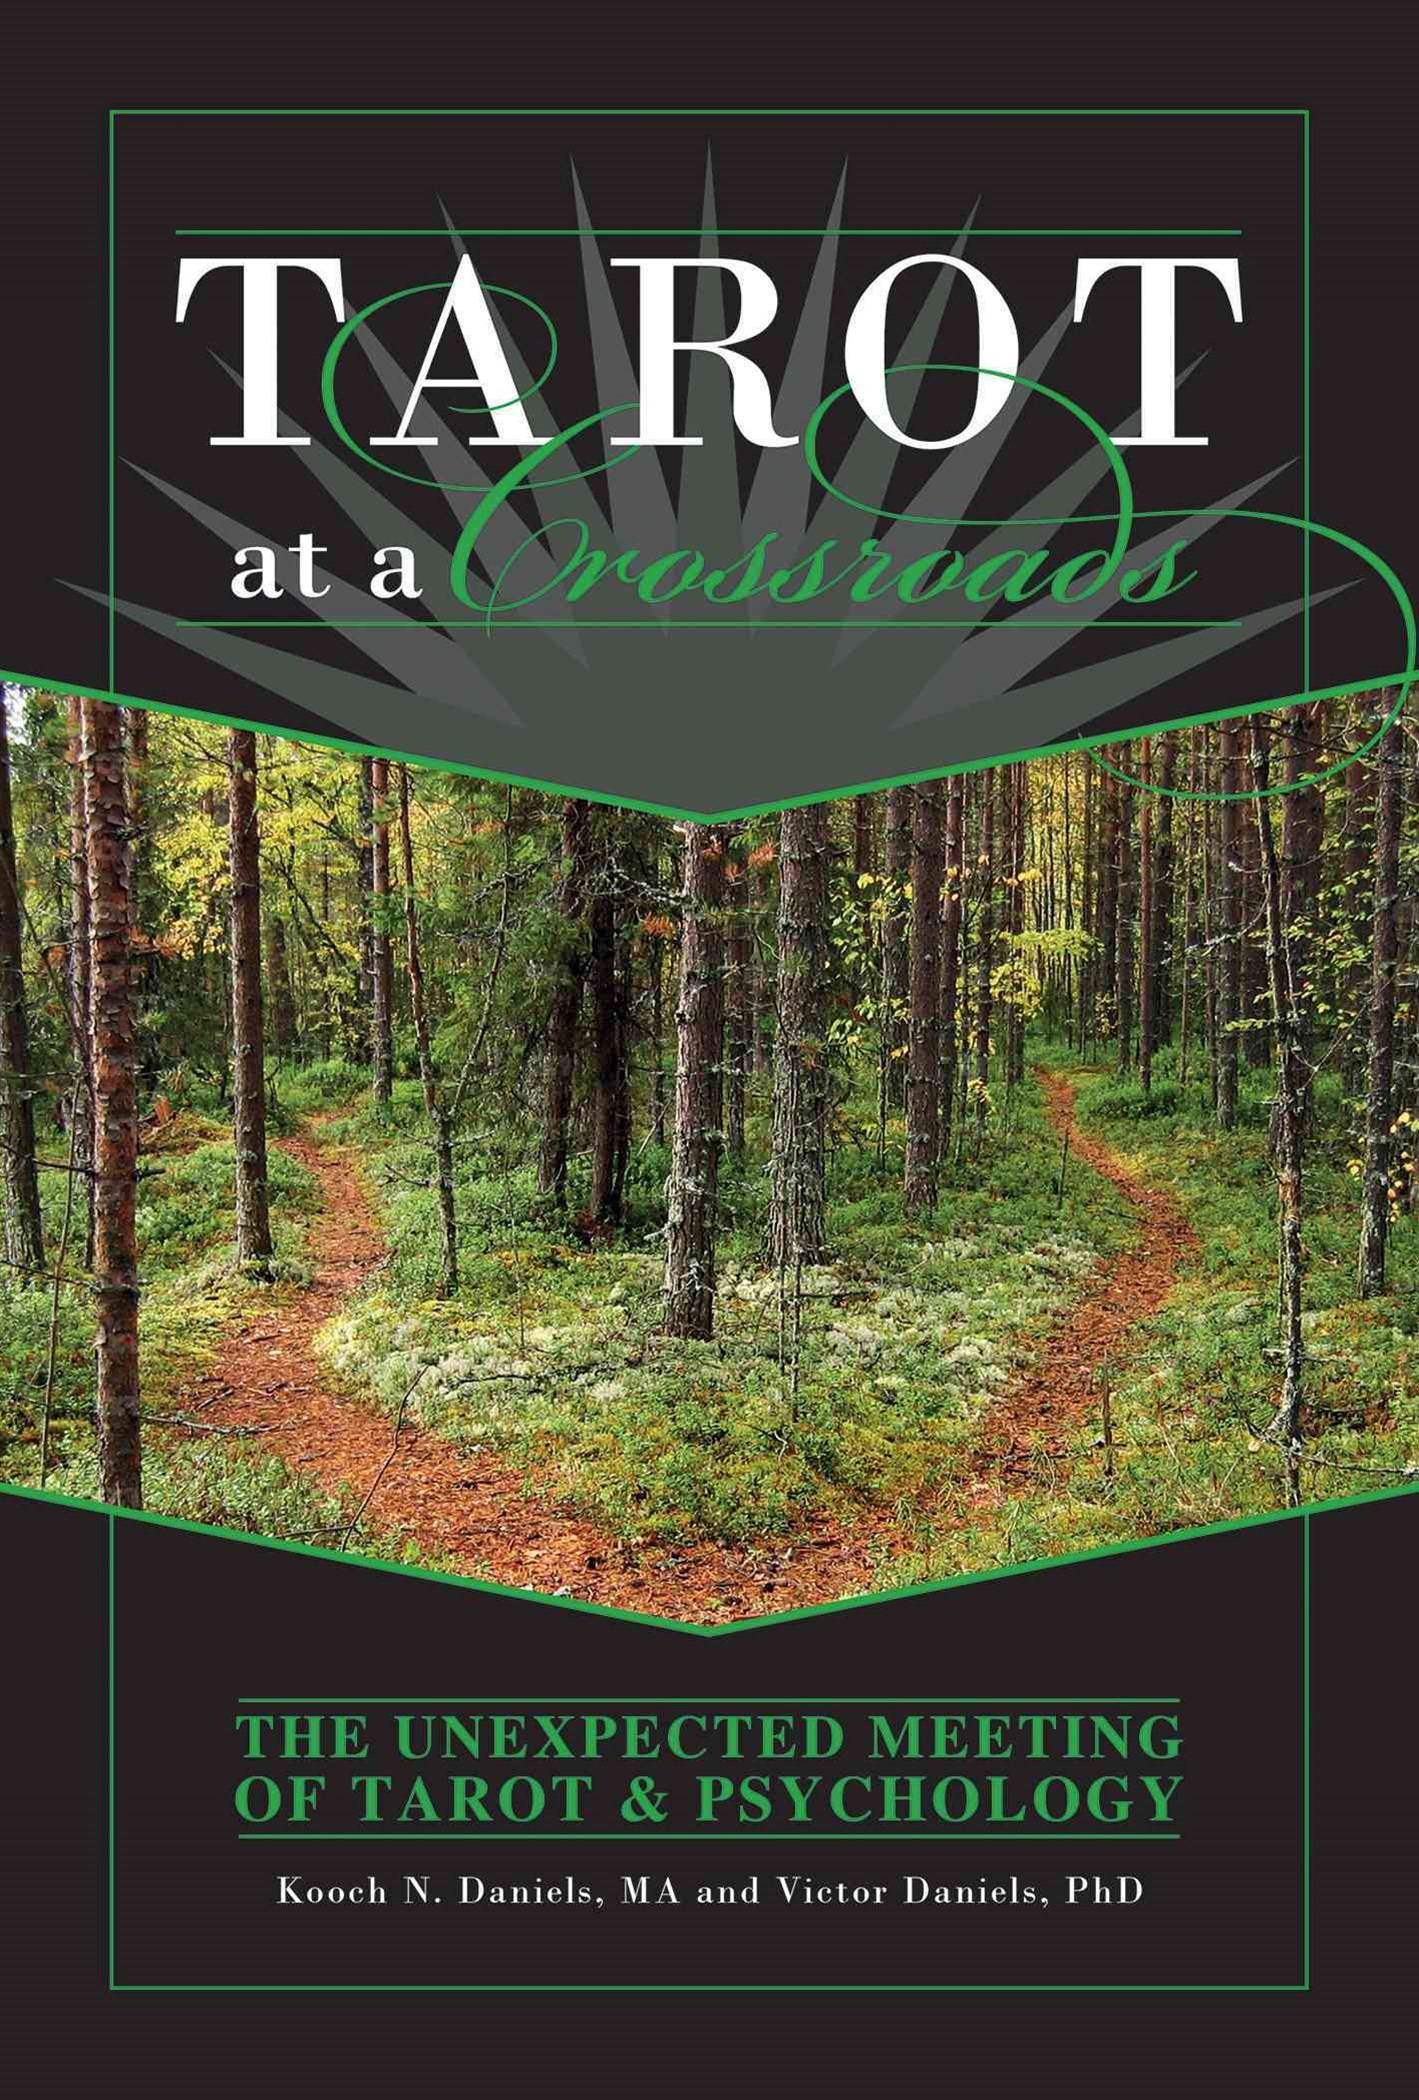 Tarot at a Crossroads: The Unexpected Meeting of Tarot and Psychology